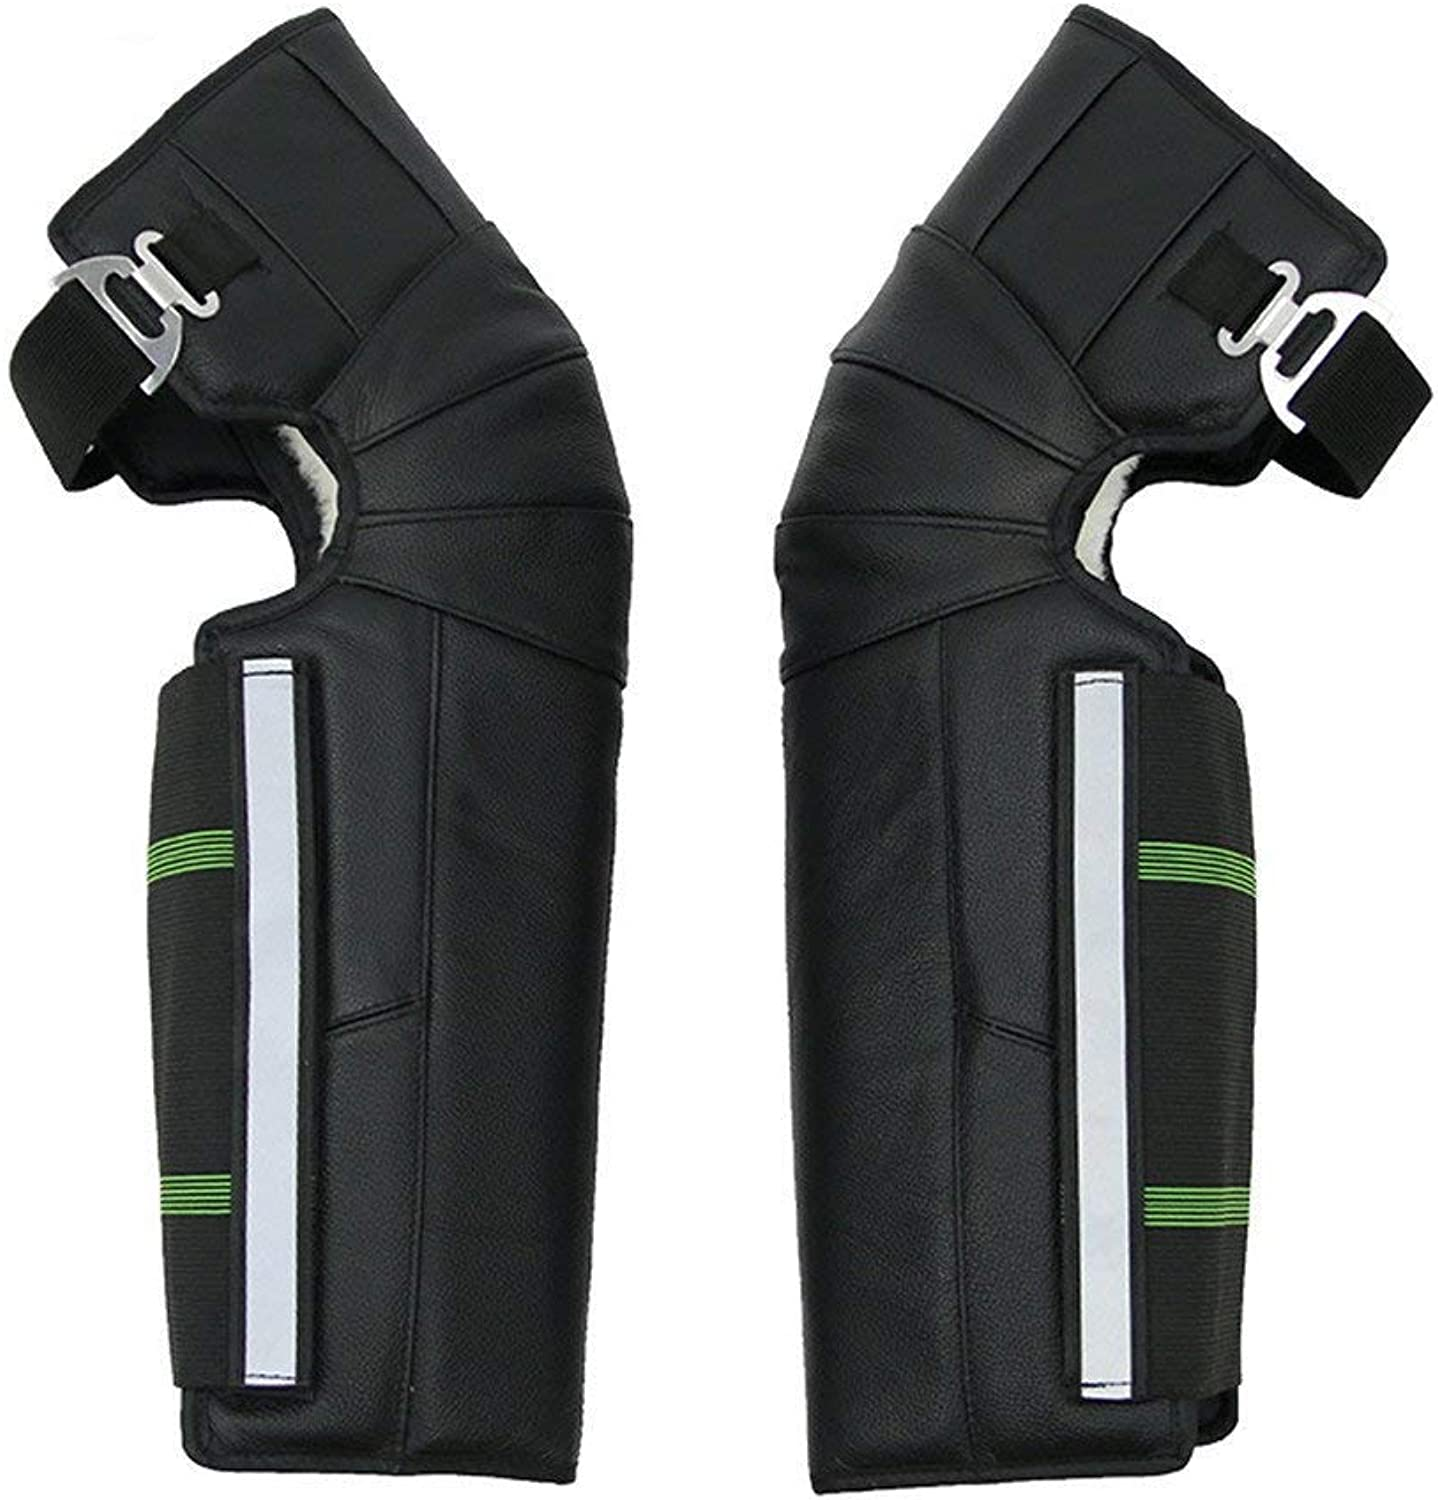 Leather Warm Knee Pads Winter Riding Cold and Windproof Knee Predectors Adjustable Length Builtin Plush